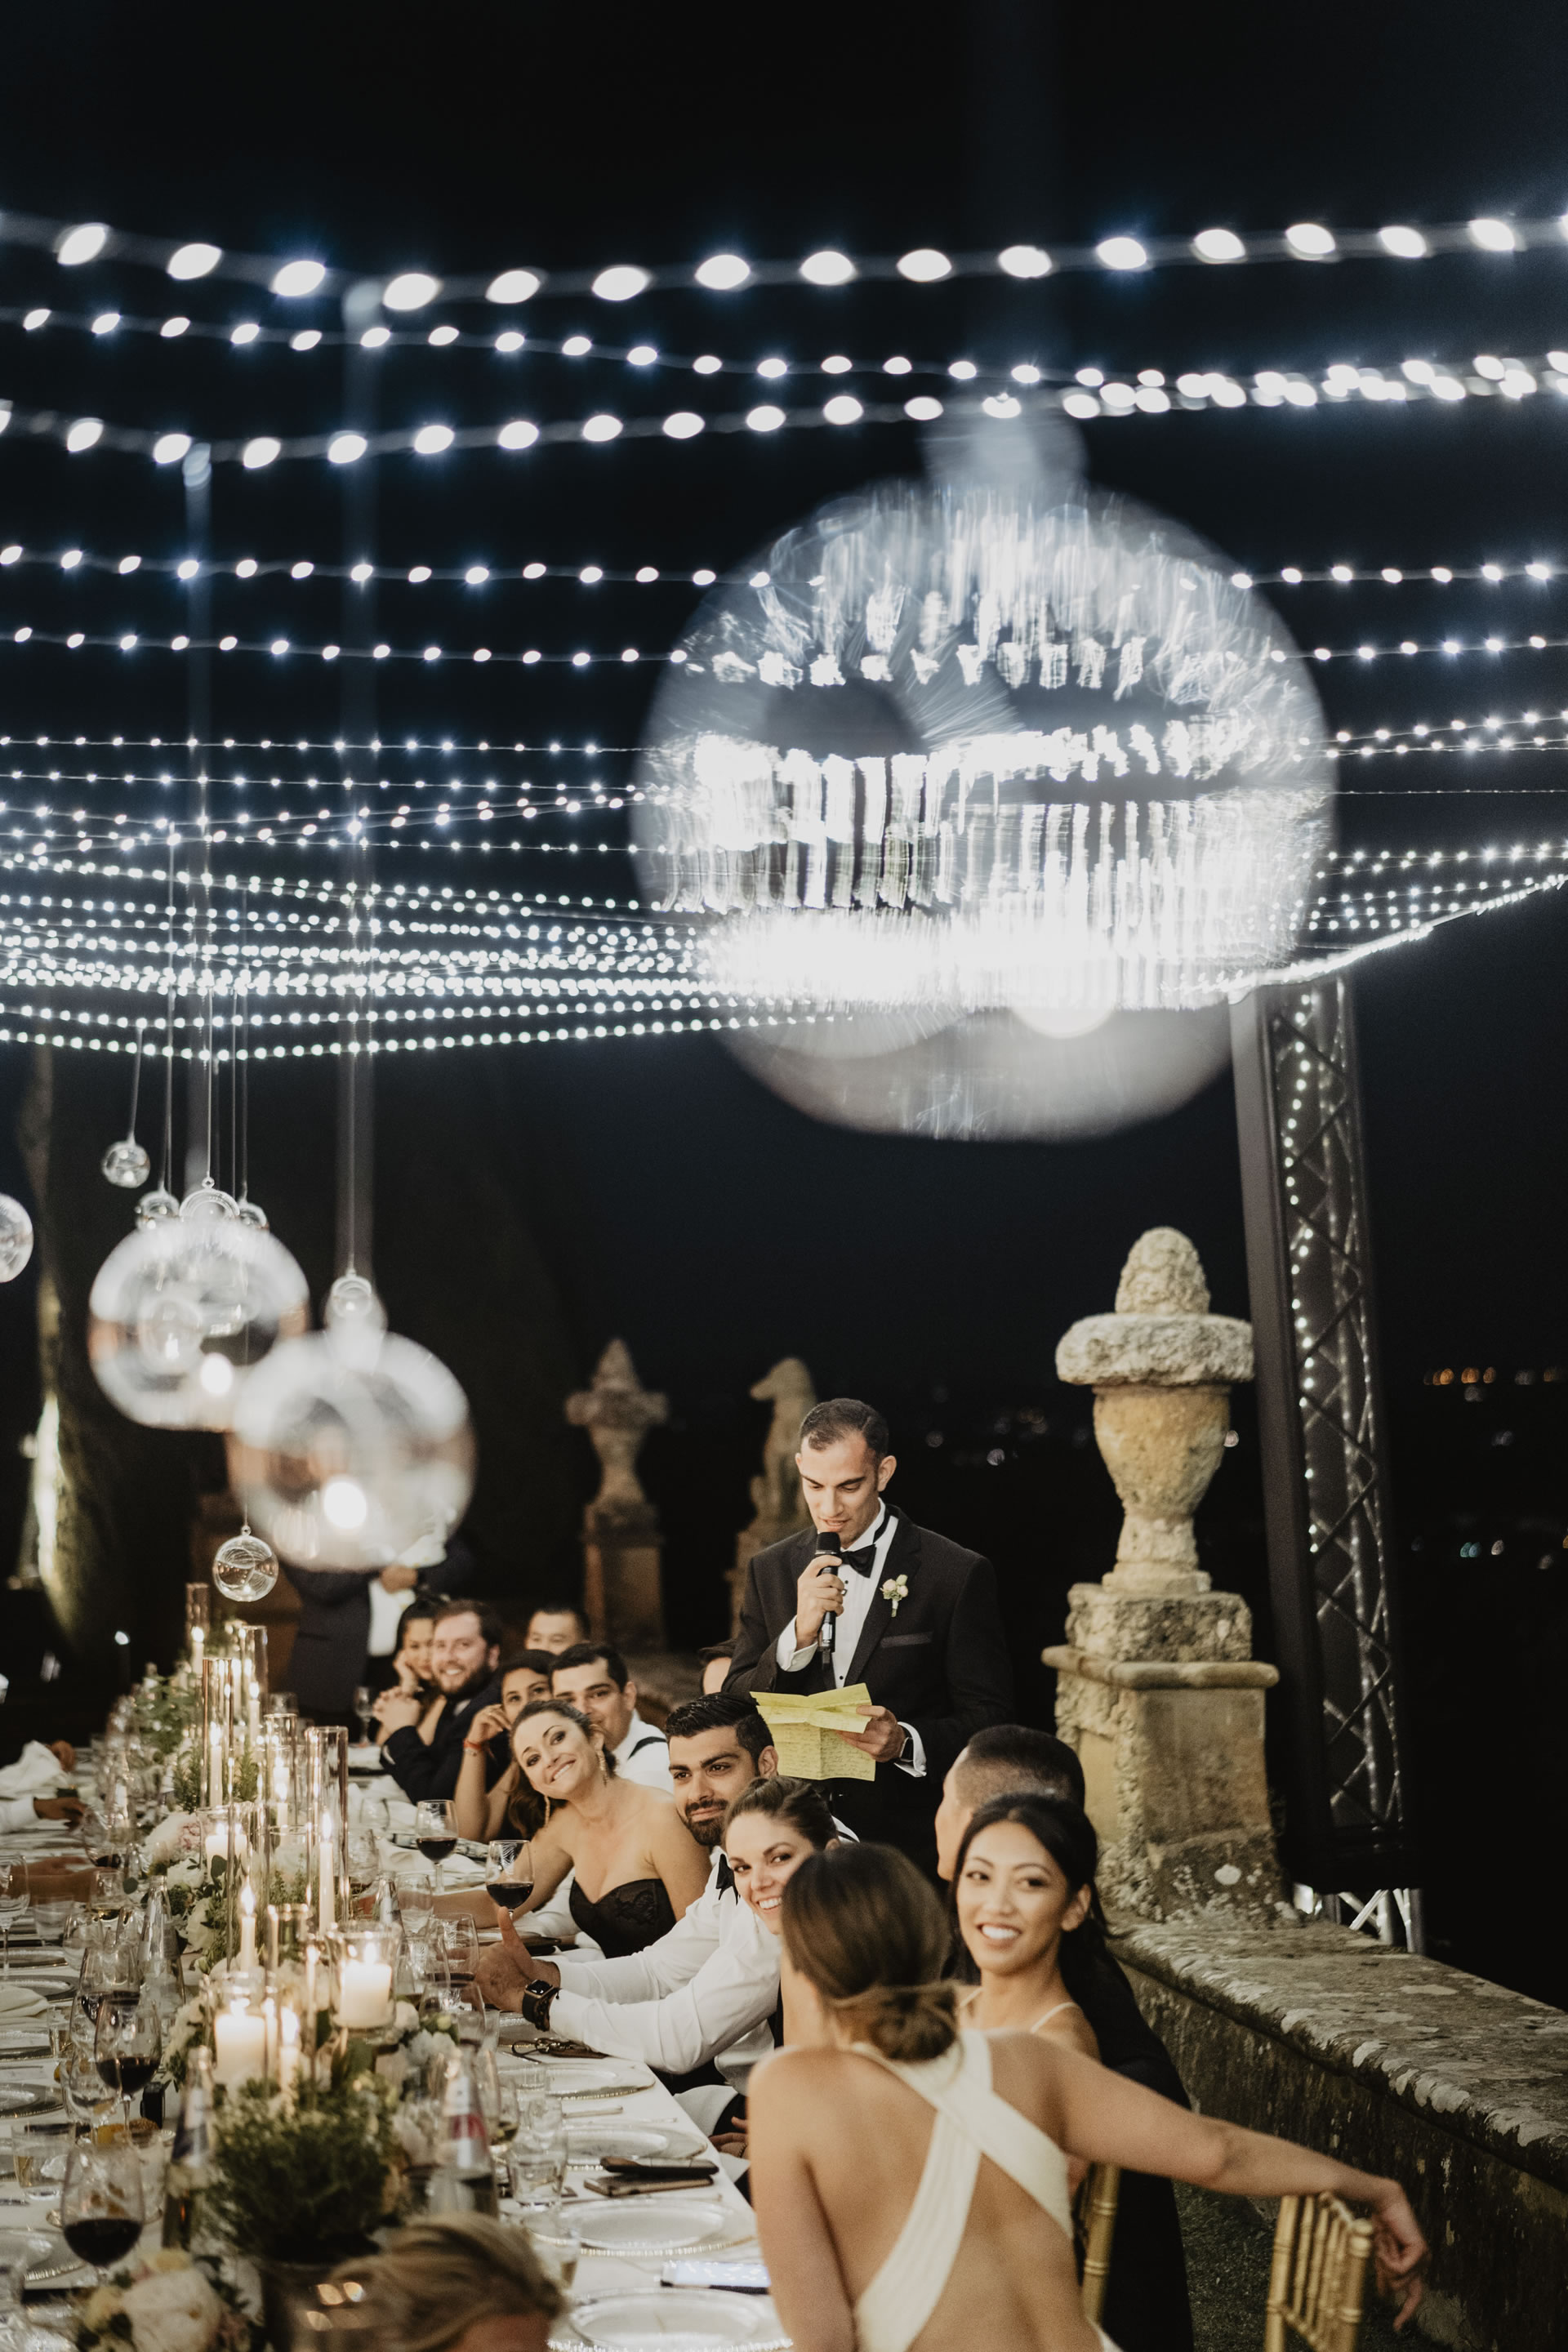 - 75 :: From Los angeles to Florence: a glamour asiatic wedding :: Luxury wedding photography - 74 ::  - 75